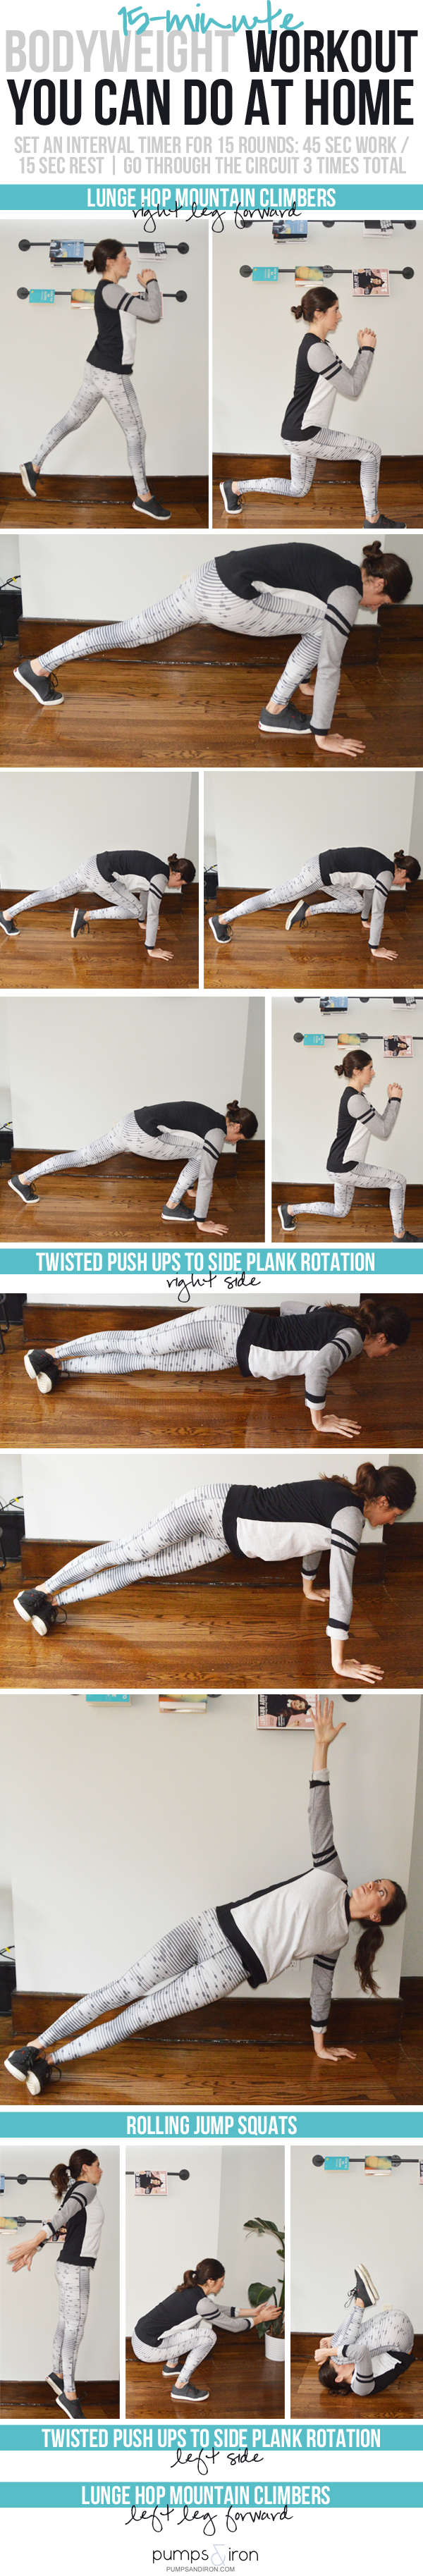 15-Minute Bodyweight Workout -- perfect to do at home!